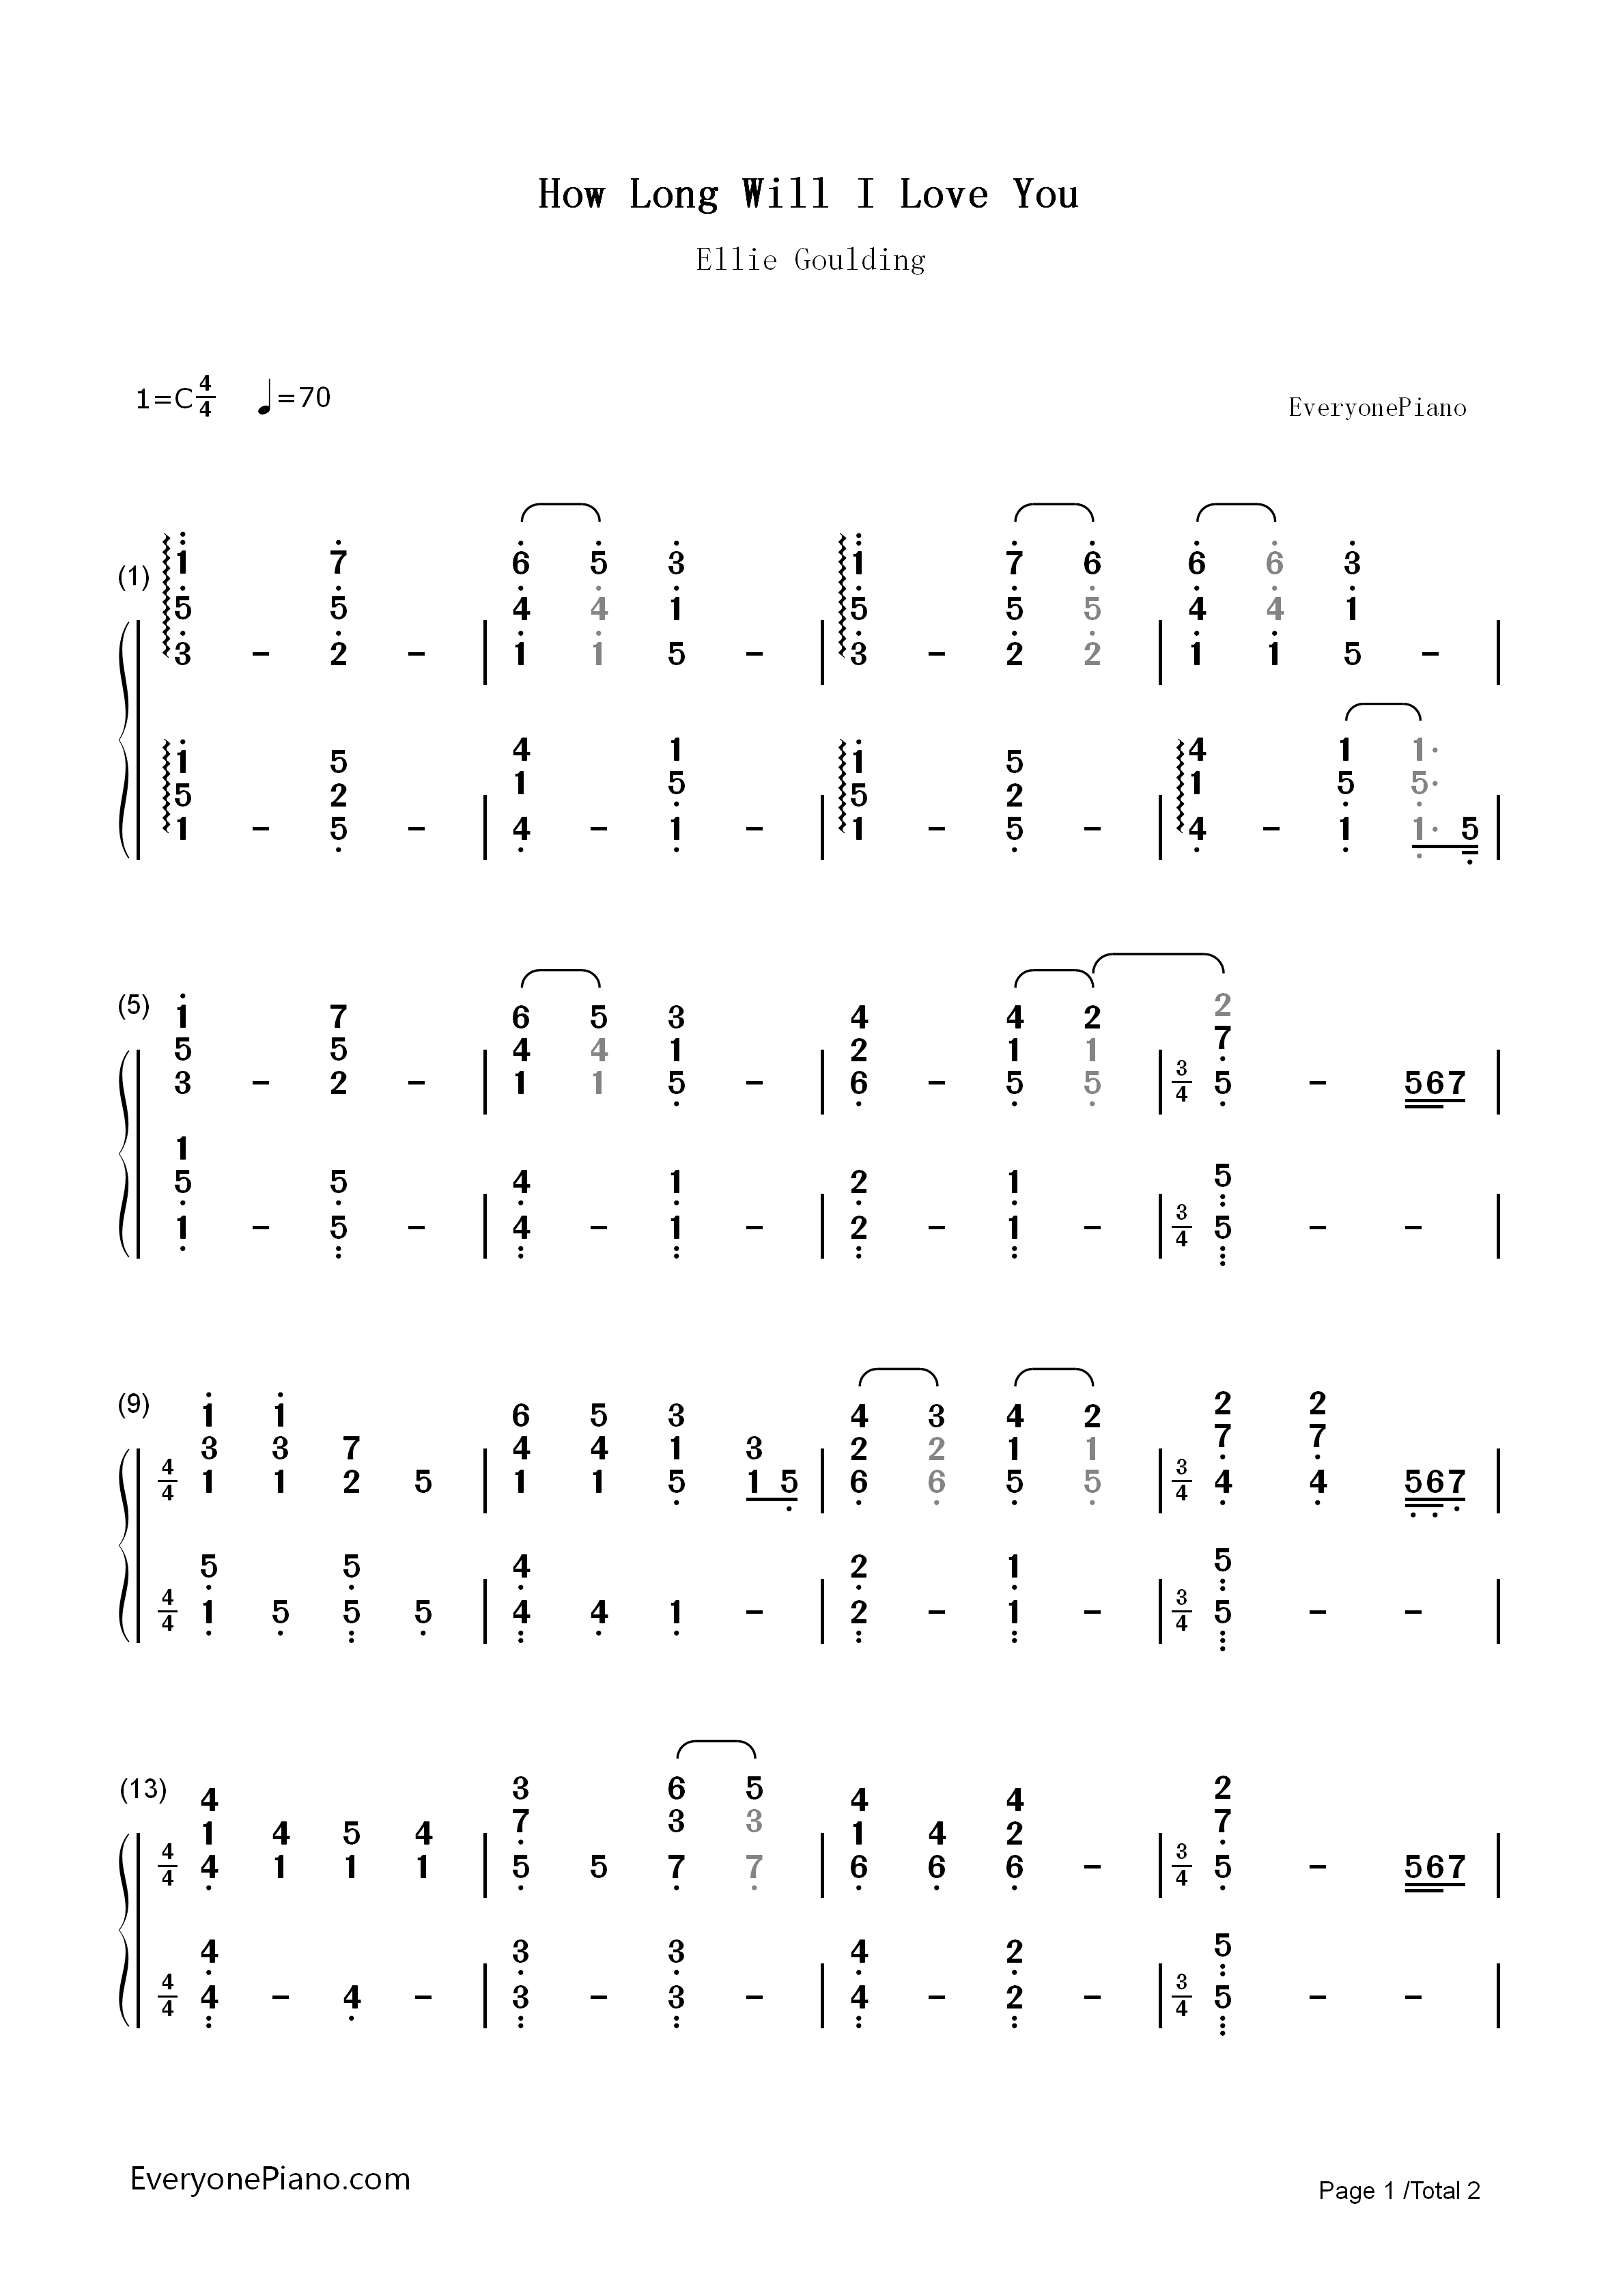 How long will i love you ellie goulding numbered musical notation listen now print sheet how long will i love you ellie goulding numbered musical notation preview 1 hexwebz Image collections